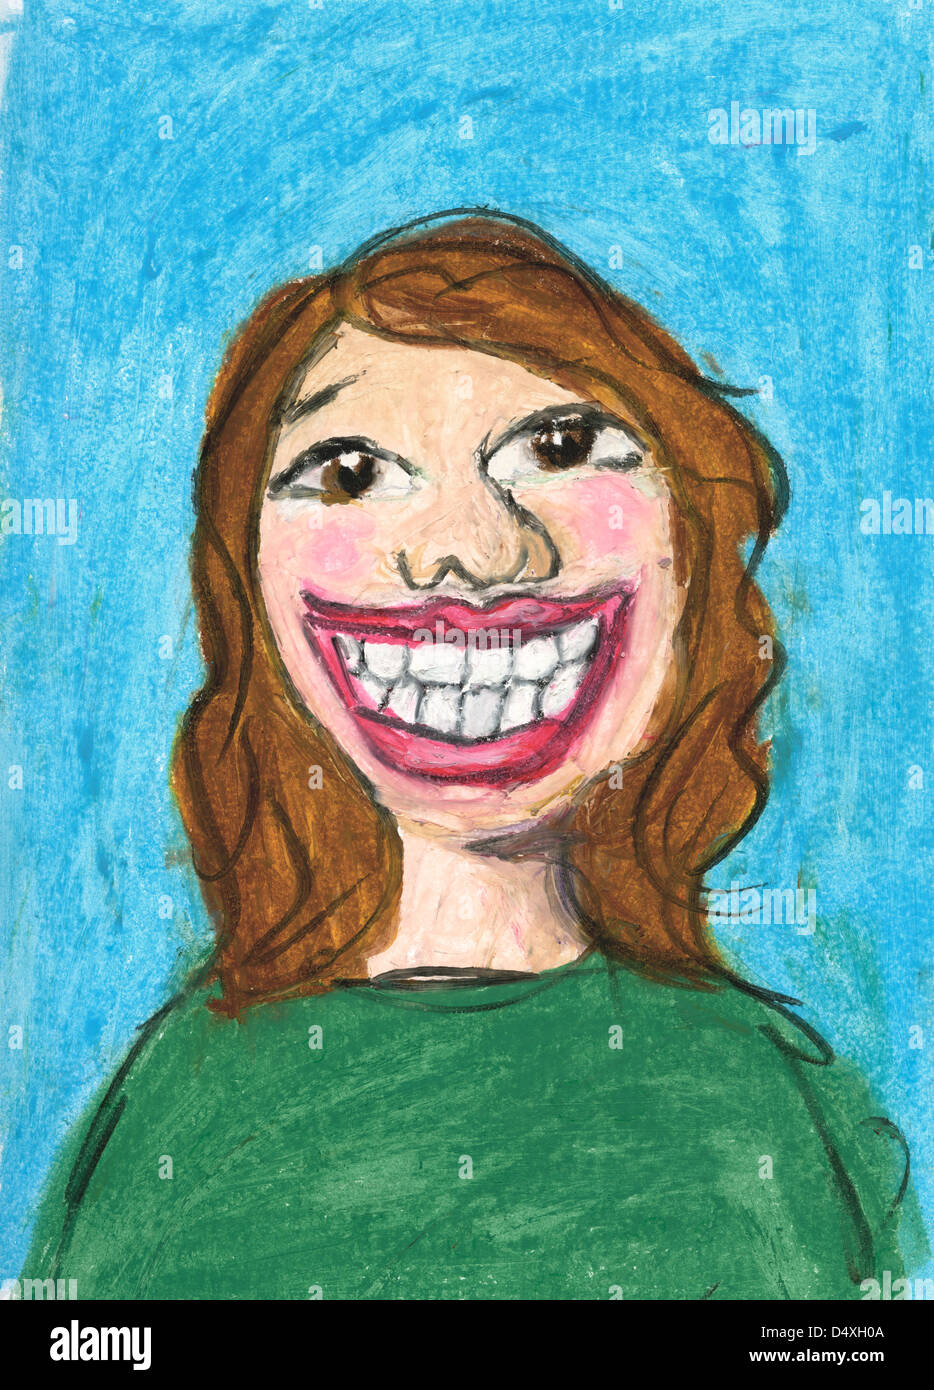 Expressive portrait of a cheerful happy Smiling woman. - Stock Image